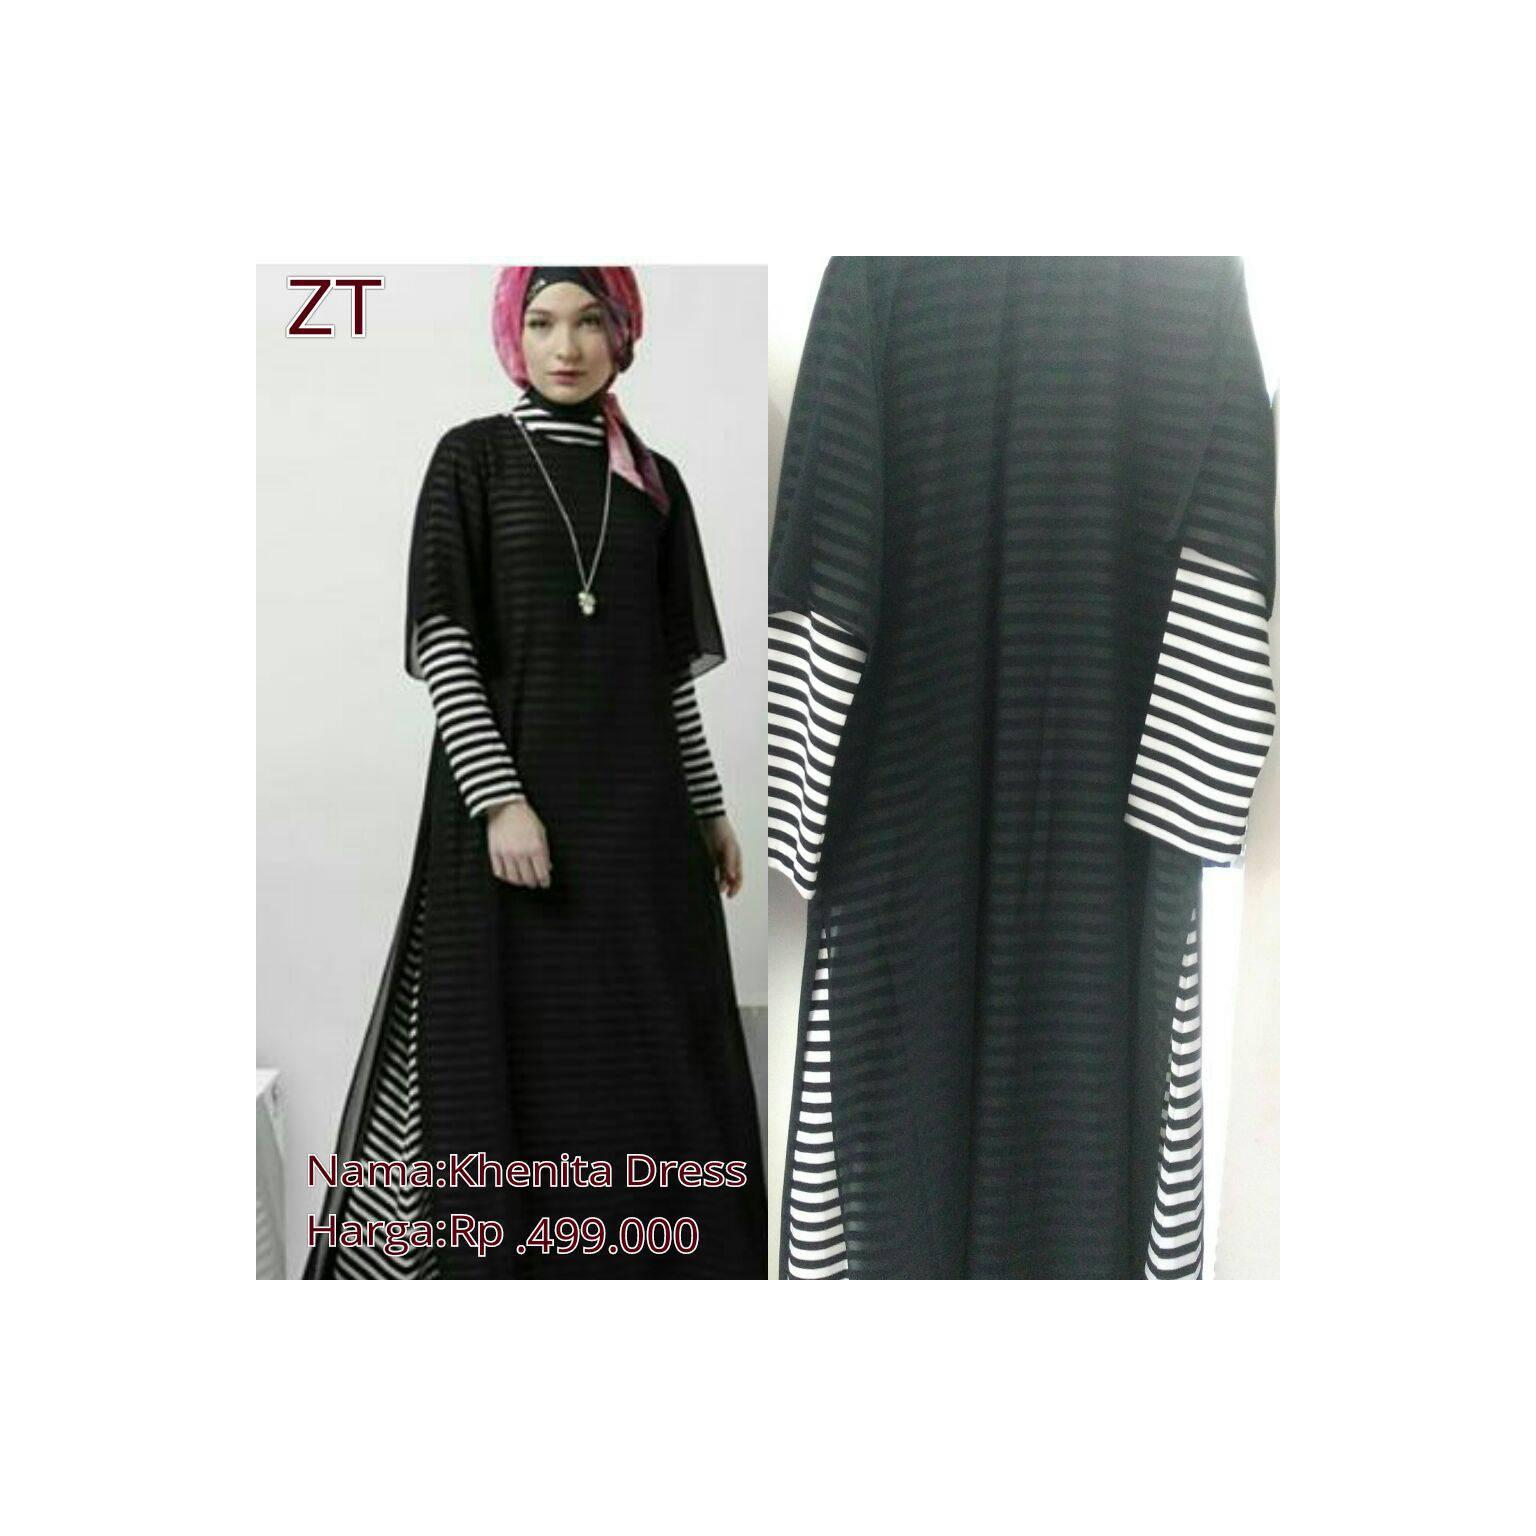 Zoya Gamis Khenita Dress